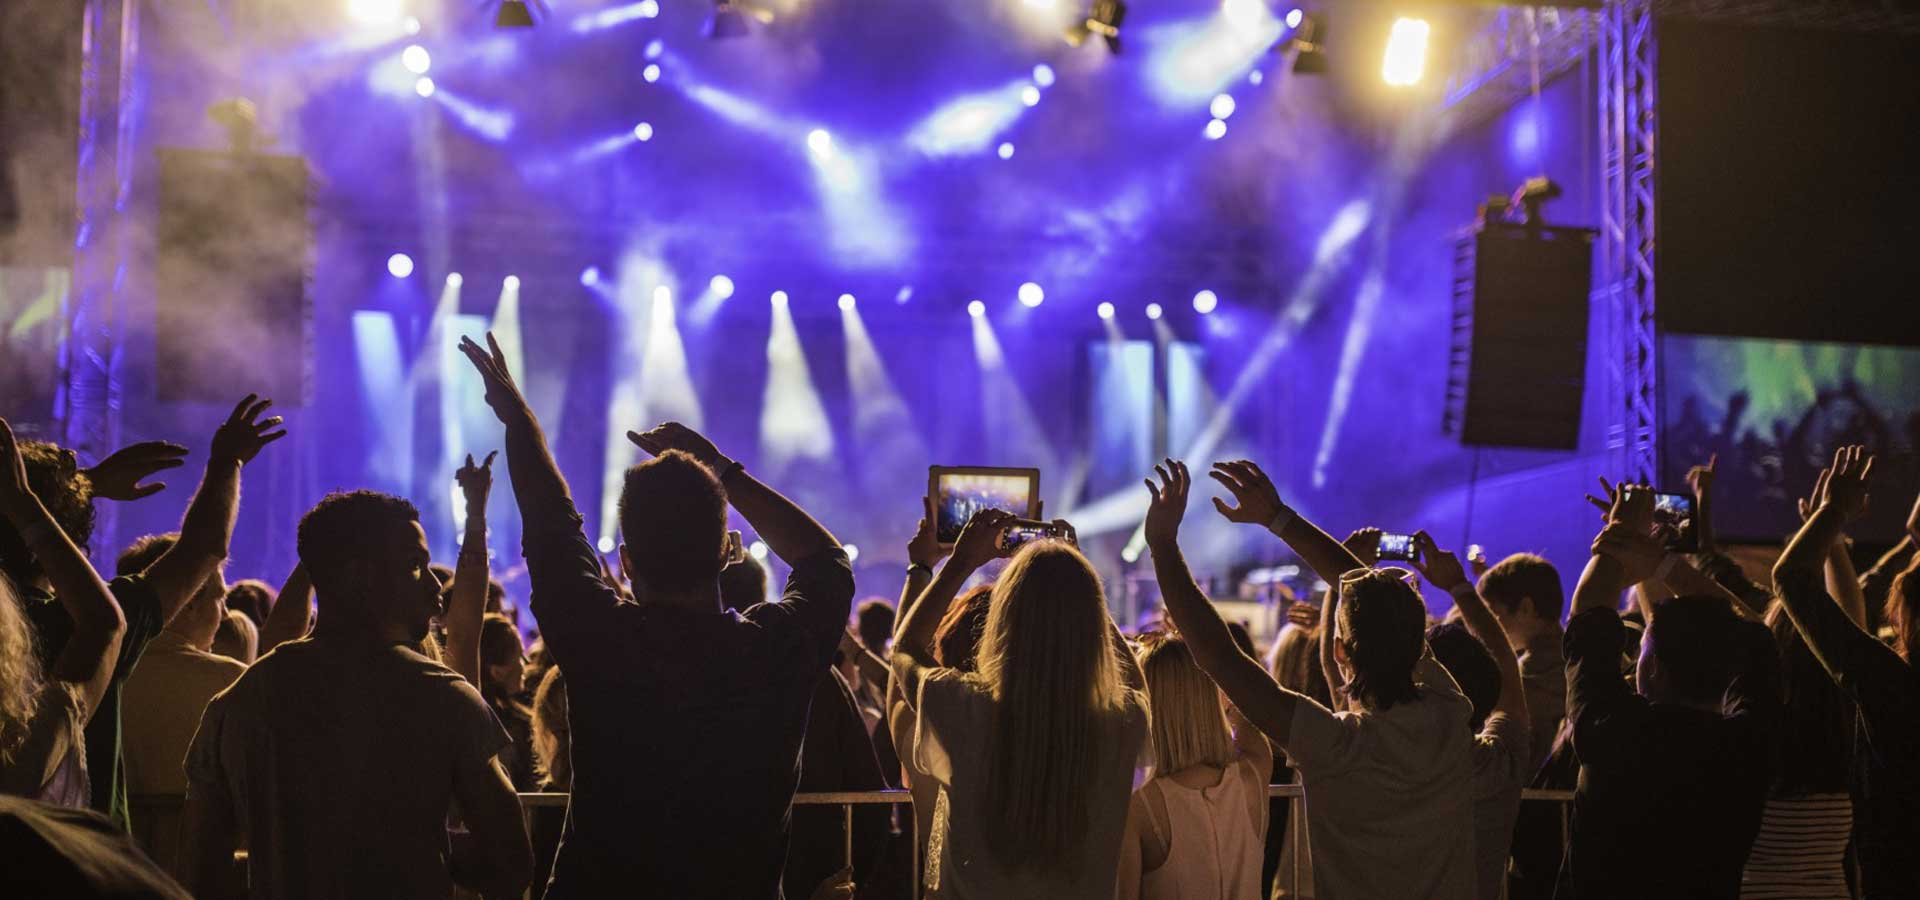 Concerts and Music Festivals